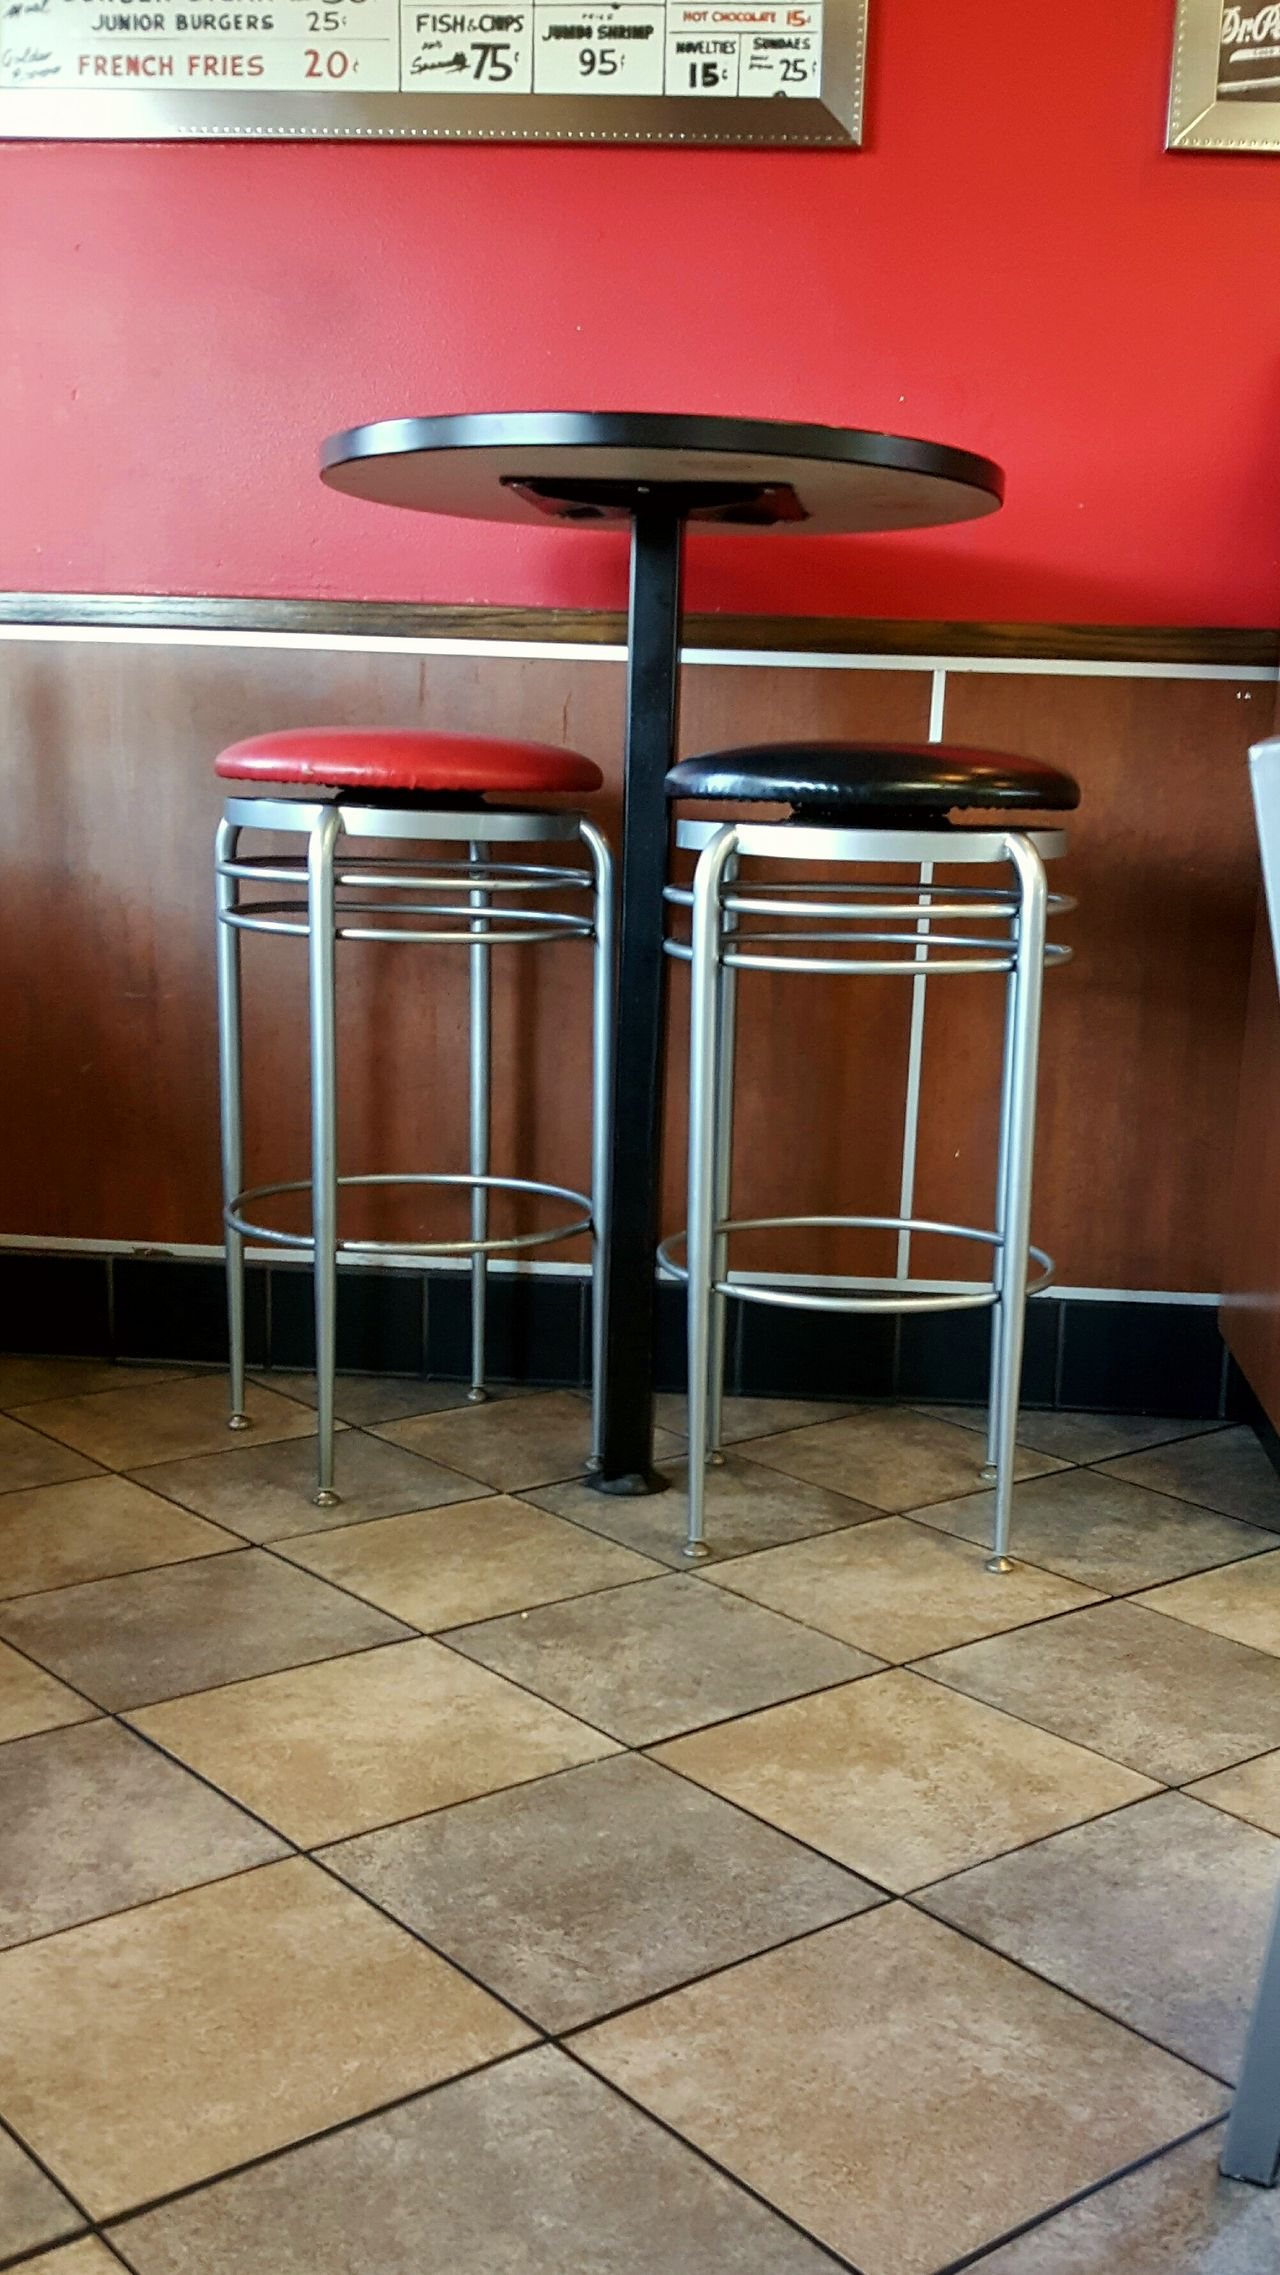 Table Stools Red Black Menu Checkered Pattern Wood Paneling Red Wall Dining Black Tiles Ready-to-eat Ready To Eat Ordering Food